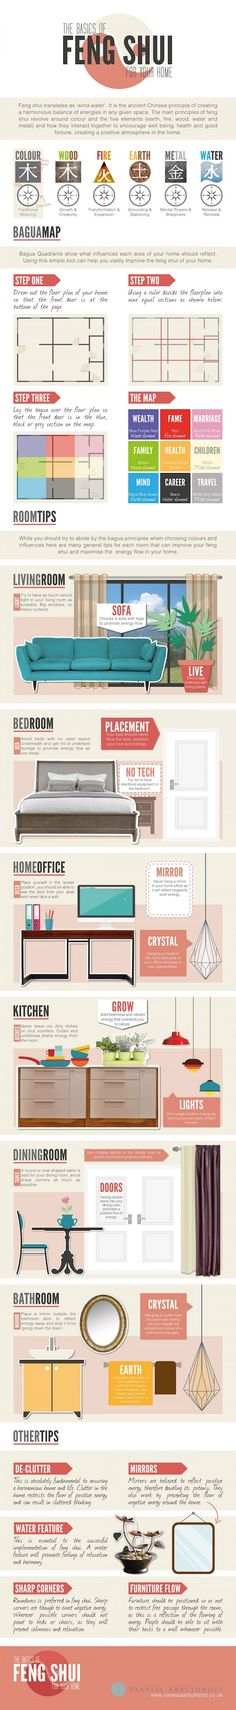 Infographic: The Basics Of Feng Shui For Every Area Of Your Home - DesignTAXI.com